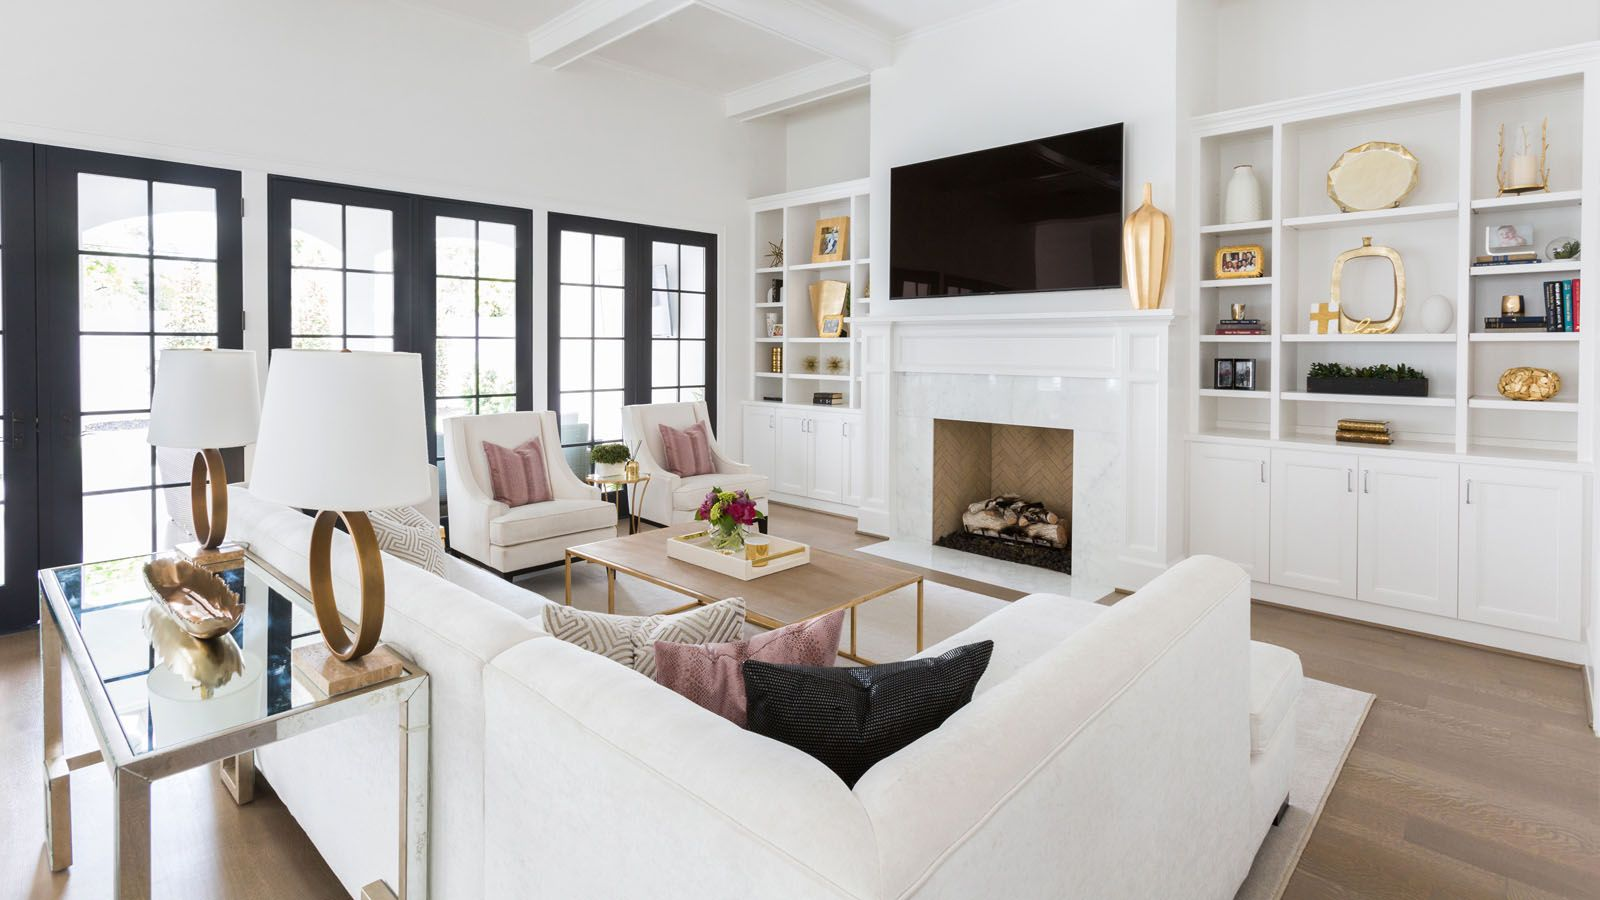 white and bright living space with over the fireplace tv laura u interior design decor. Black Bedroom Furniture Sets. Home Design Ideas